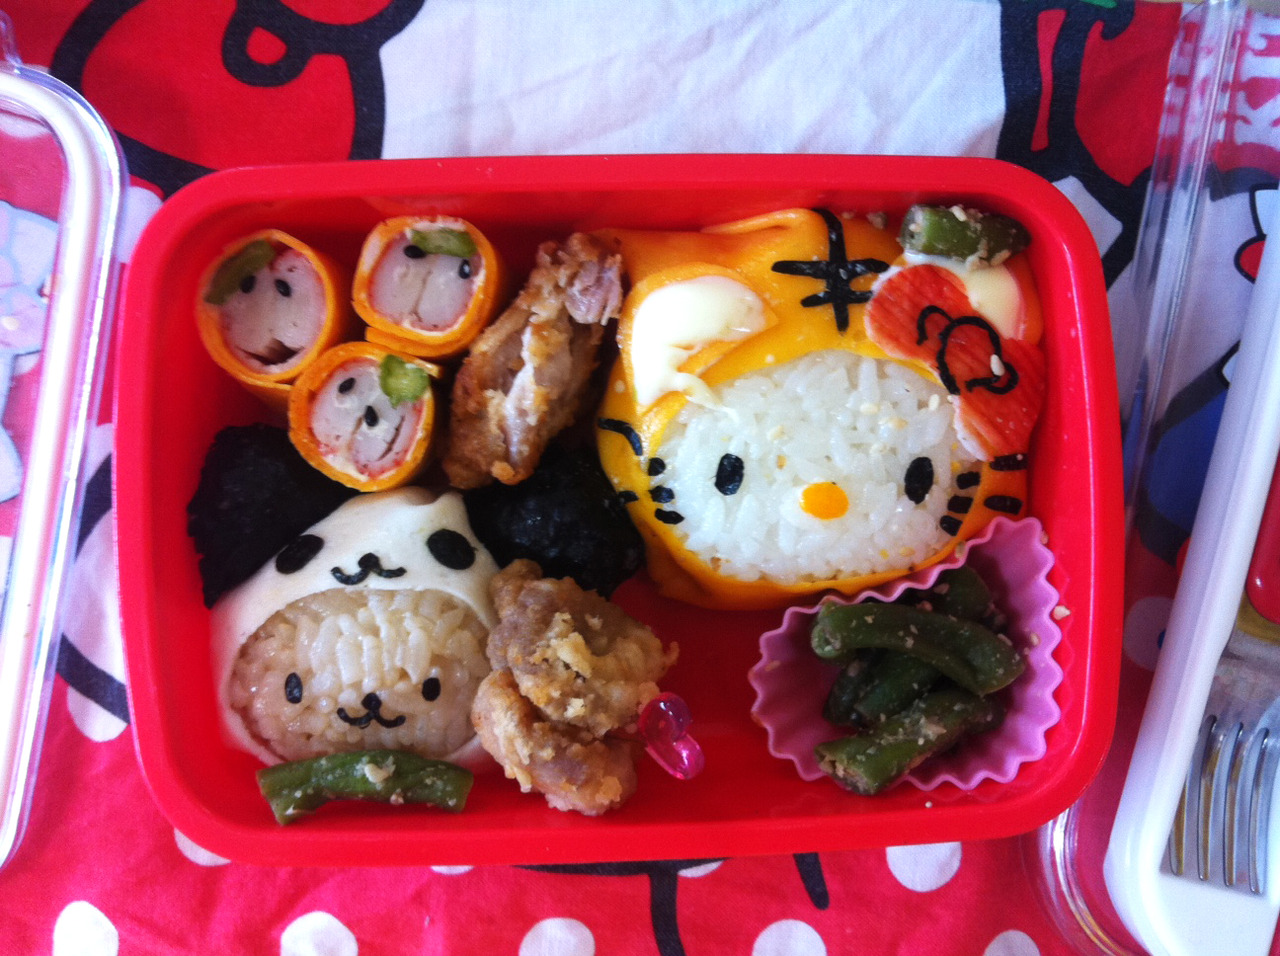 I realize I haven't been posting too many pictures of my new class. But I am now teaching the 4 and 5 year olds in Tiger class. I really enjoy my class, and I am even teaching some of my students from last year as well. This bento is from one of those students. It artfully displays the graduation from panda class to tiger class via rice balls.